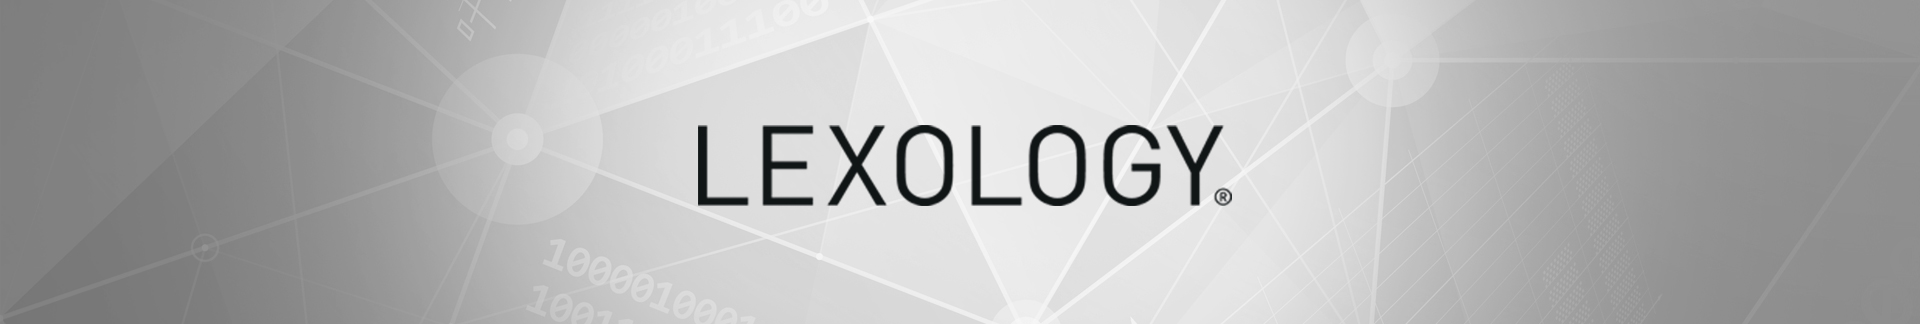 Lexology news banner